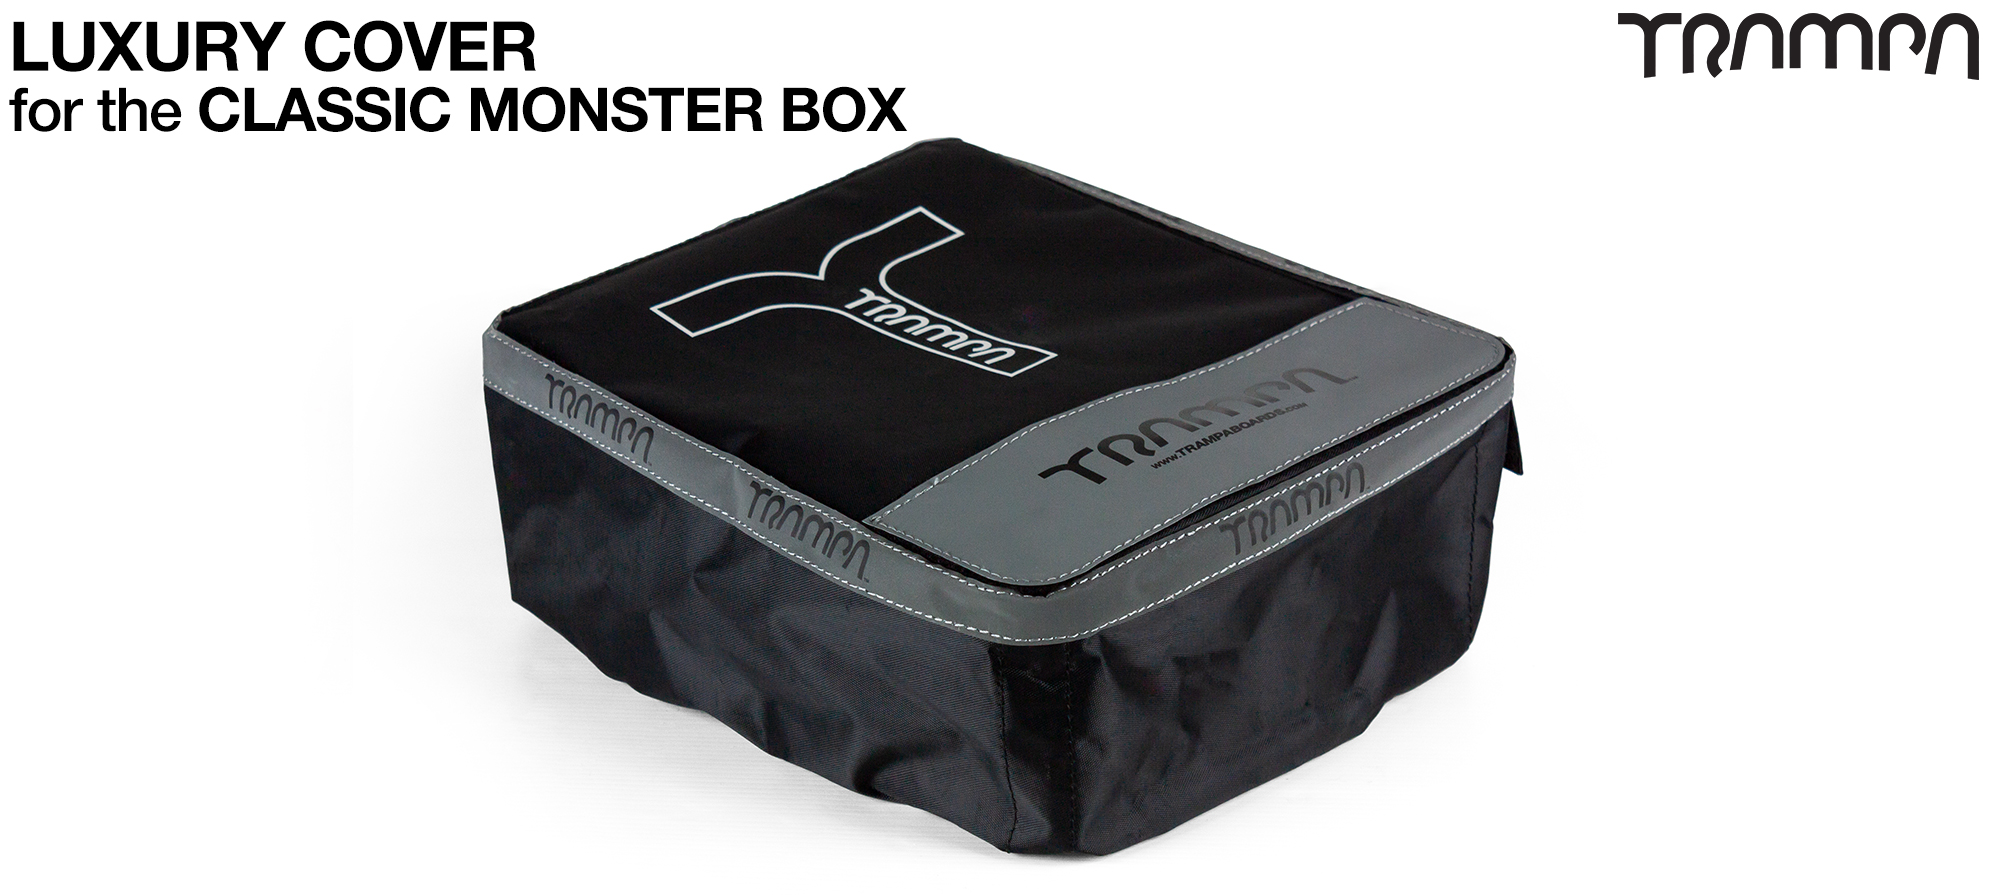 HEAVY DUTY CLASSIC Monster Box protective Cover with Inspection pit & tool Pockets...